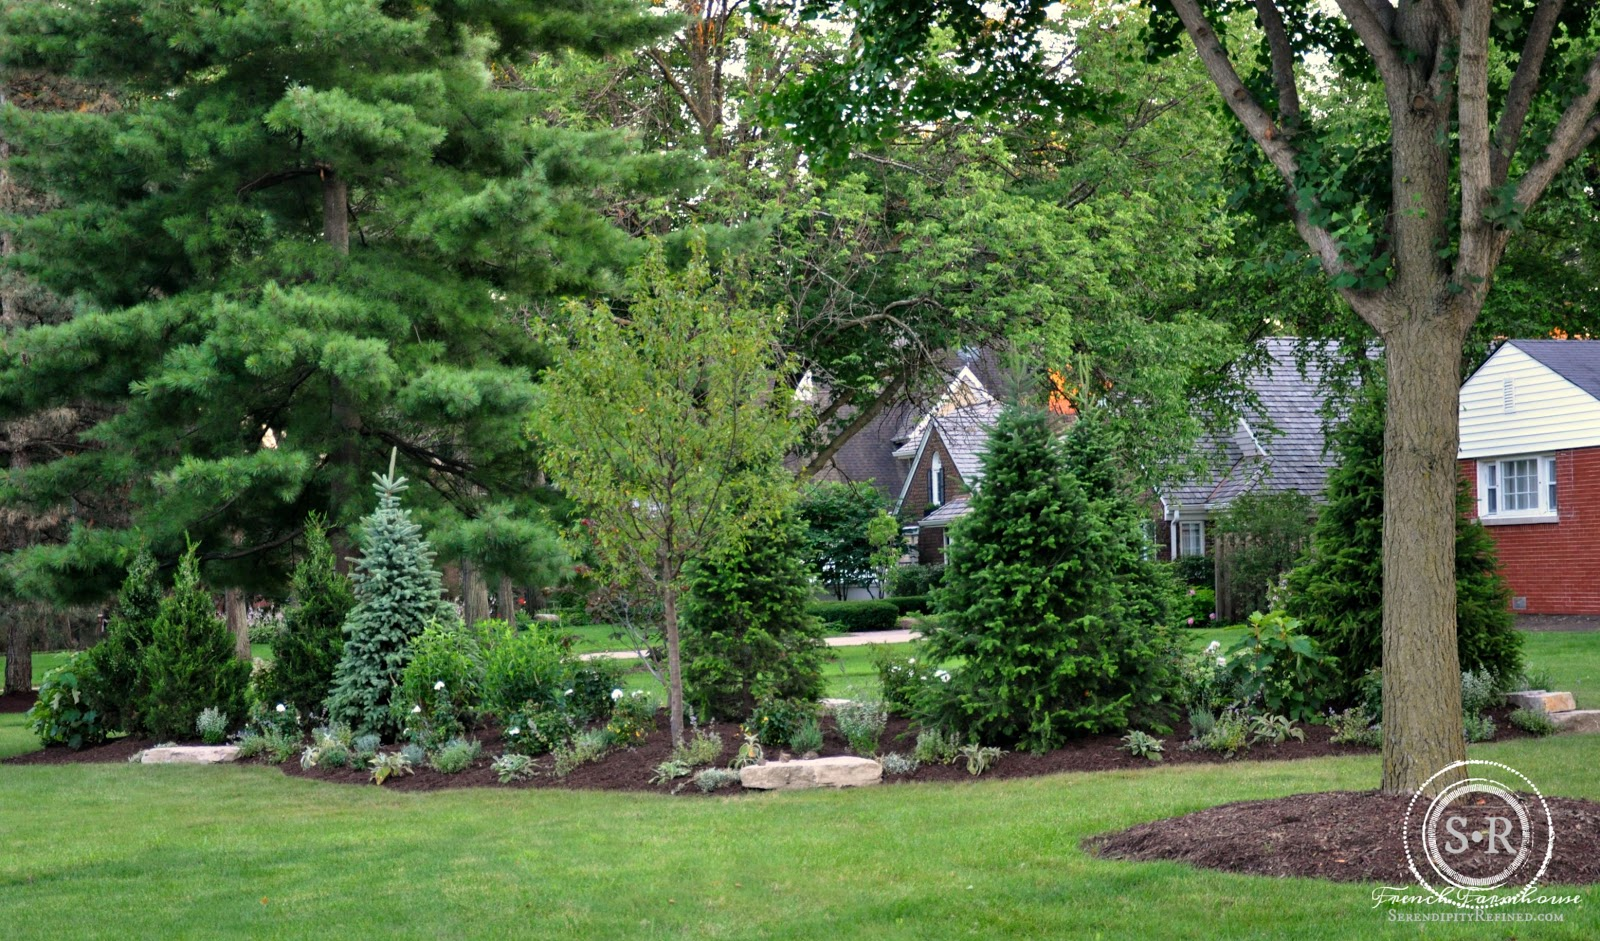 Serendipity Refined Blog: How to Landscape a Corner Lot